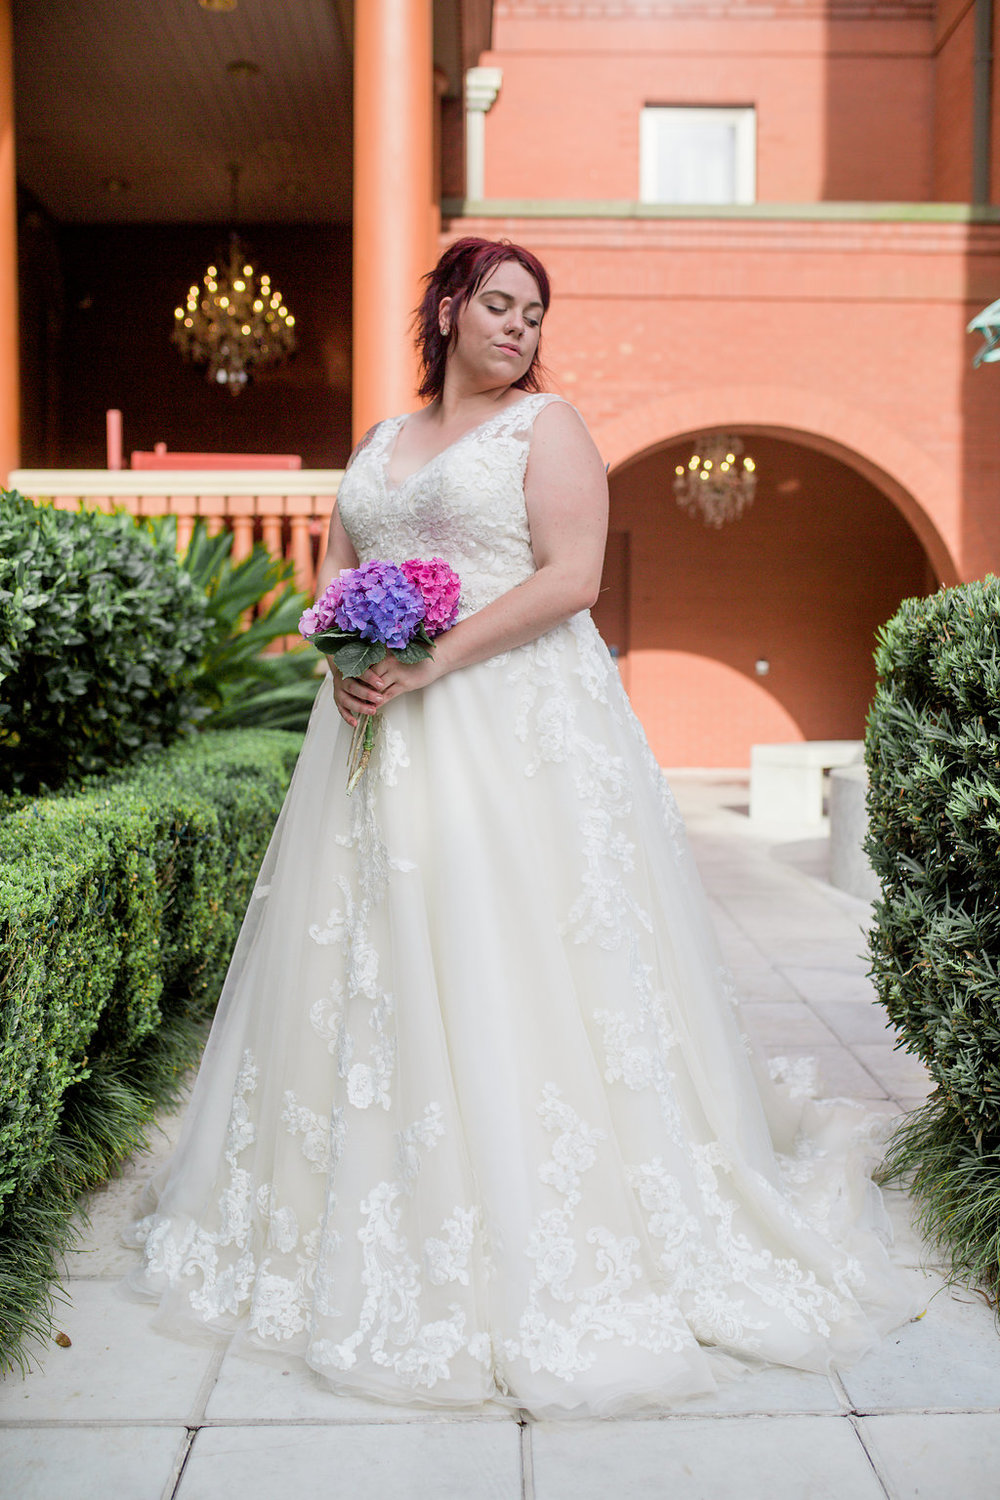 ivory-and-beau-bridal-boutique-alexis-sweet-photography-plus-sized-wedding-gowns-savannah-ga-plus-sized-wedding-dress-savannah-ga-10.jpg